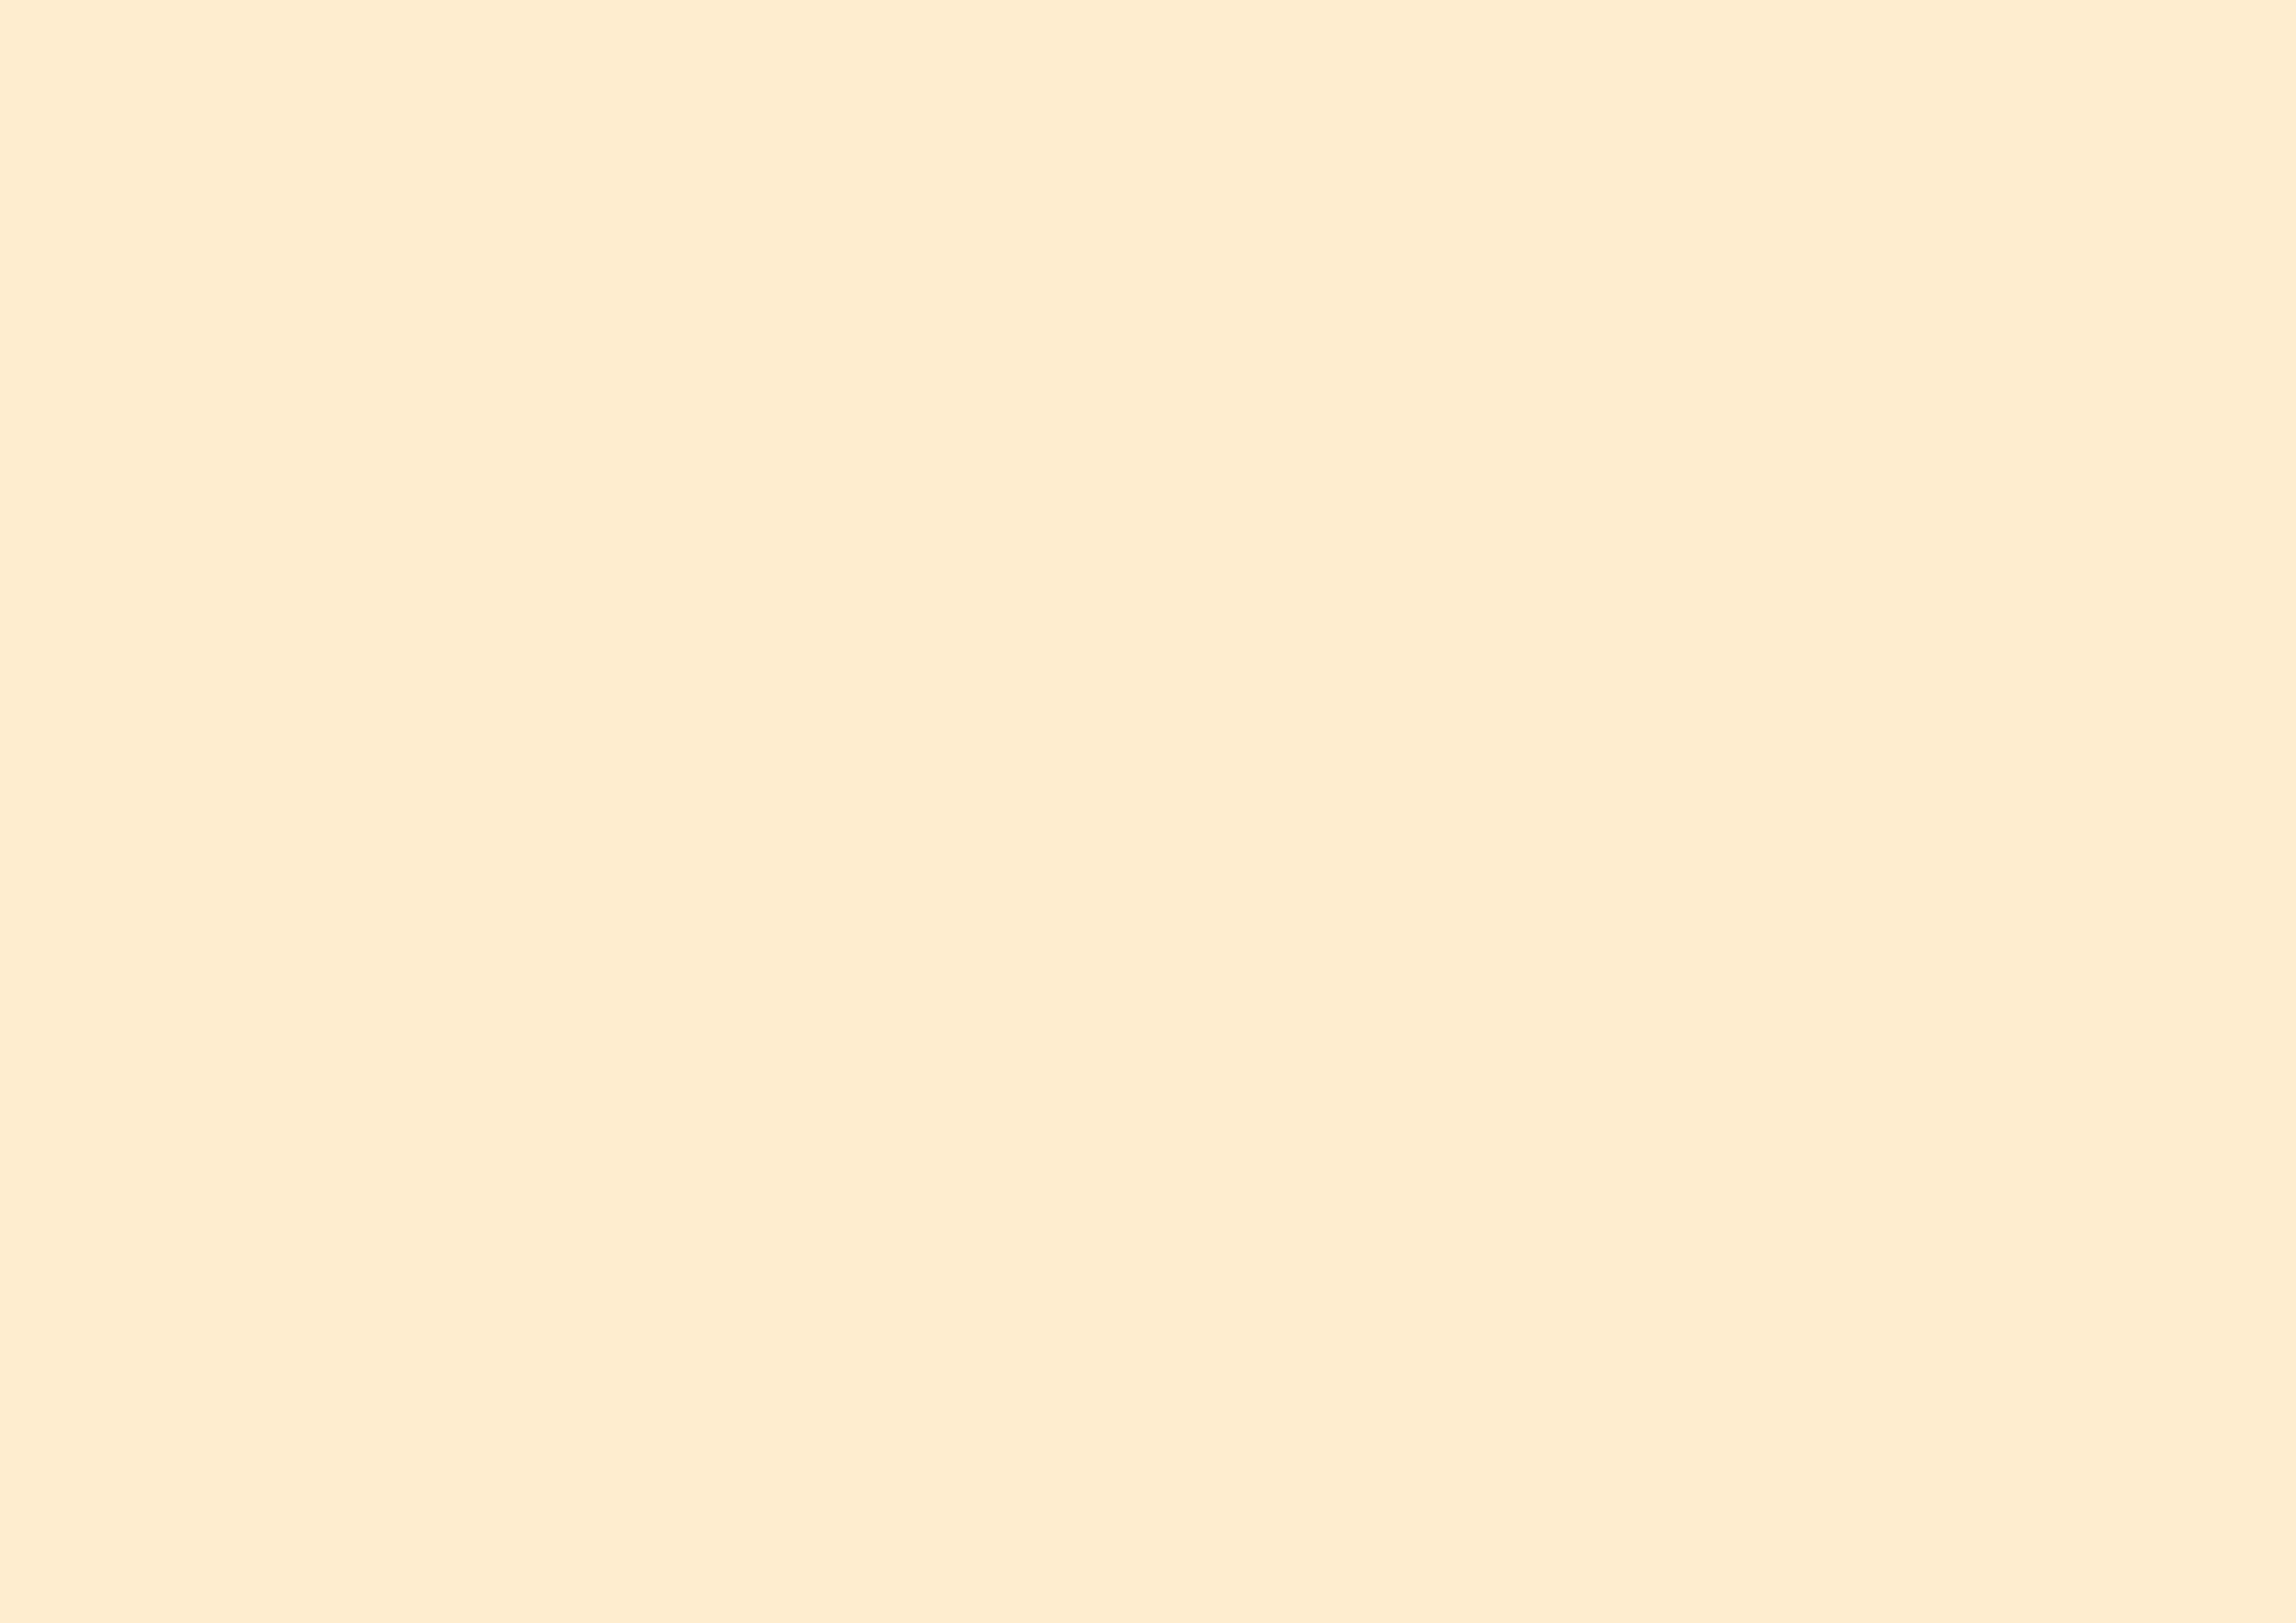 3508x2480 Blanched Almond Solid Color Background